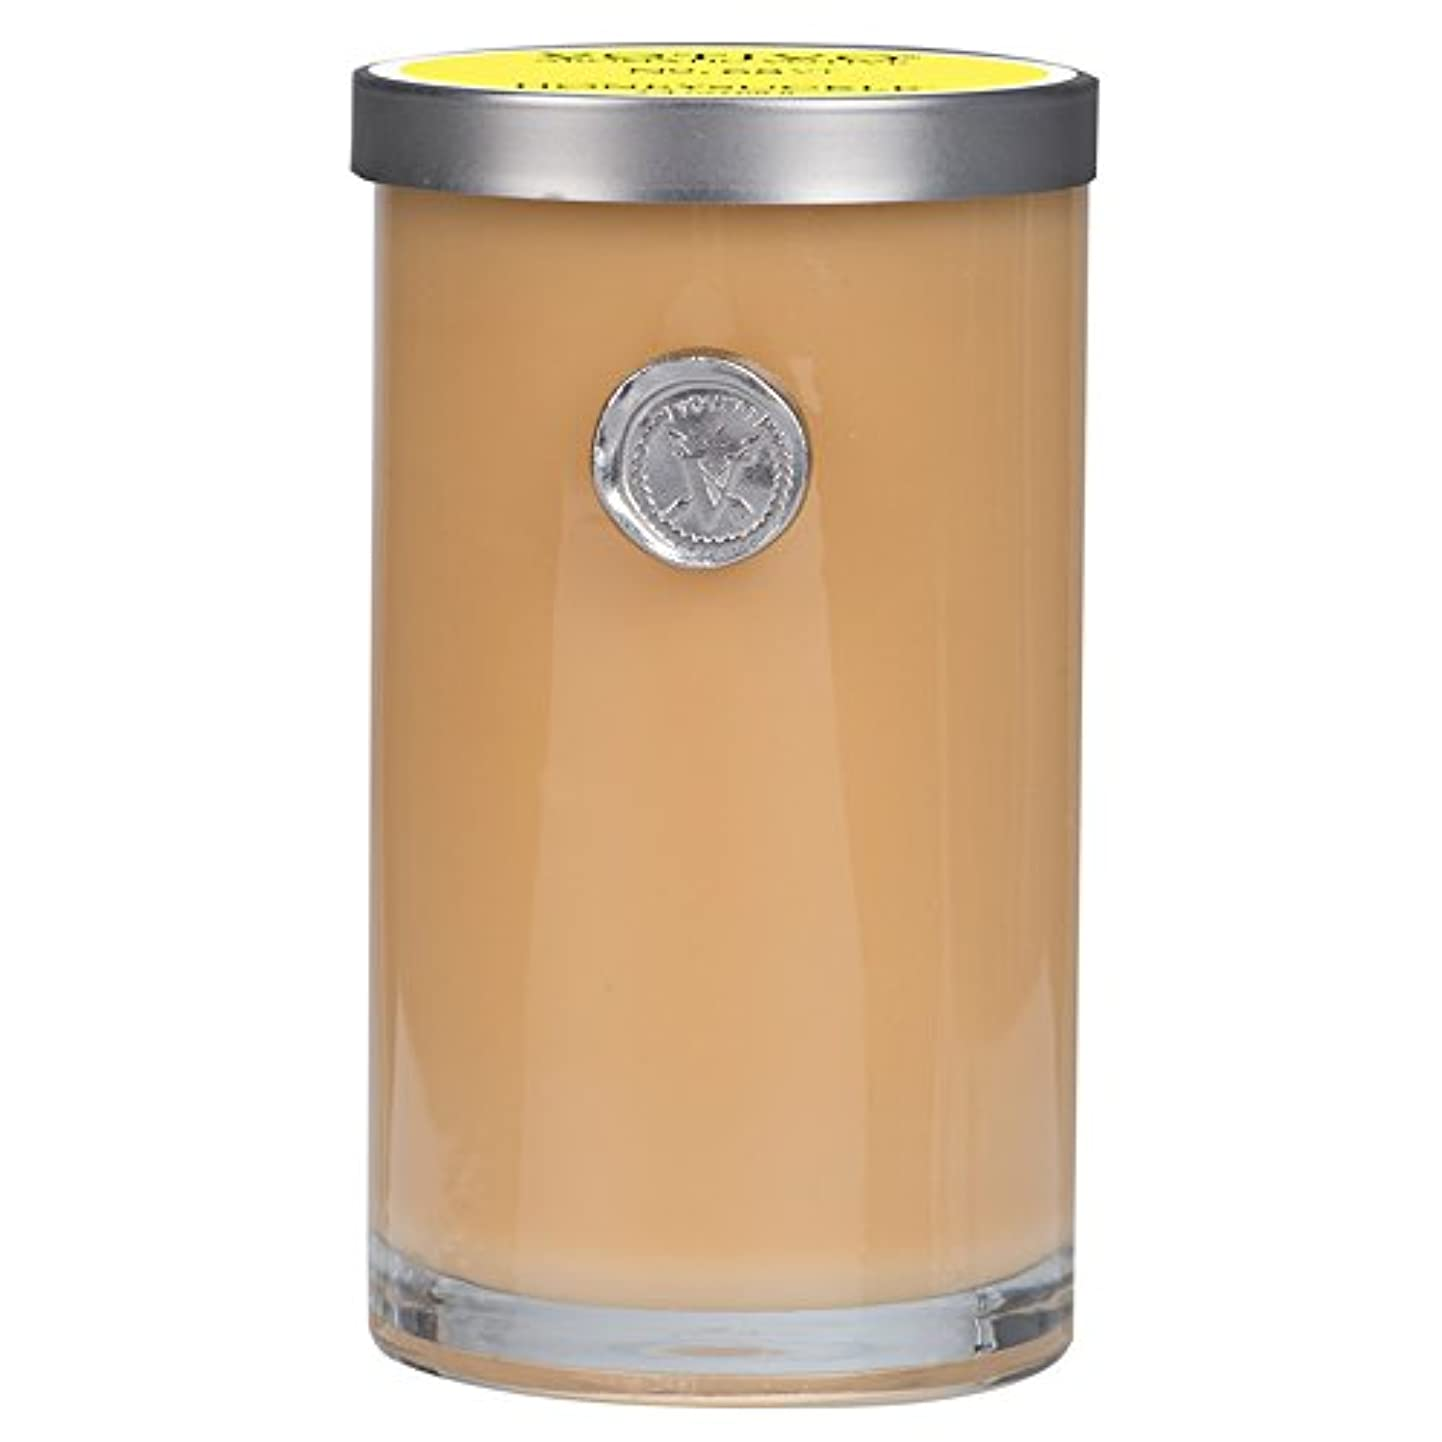 層効能アンデス山脈VOTIVO AROMATIC VOTIVE CANDLE HONEYSUCKLE